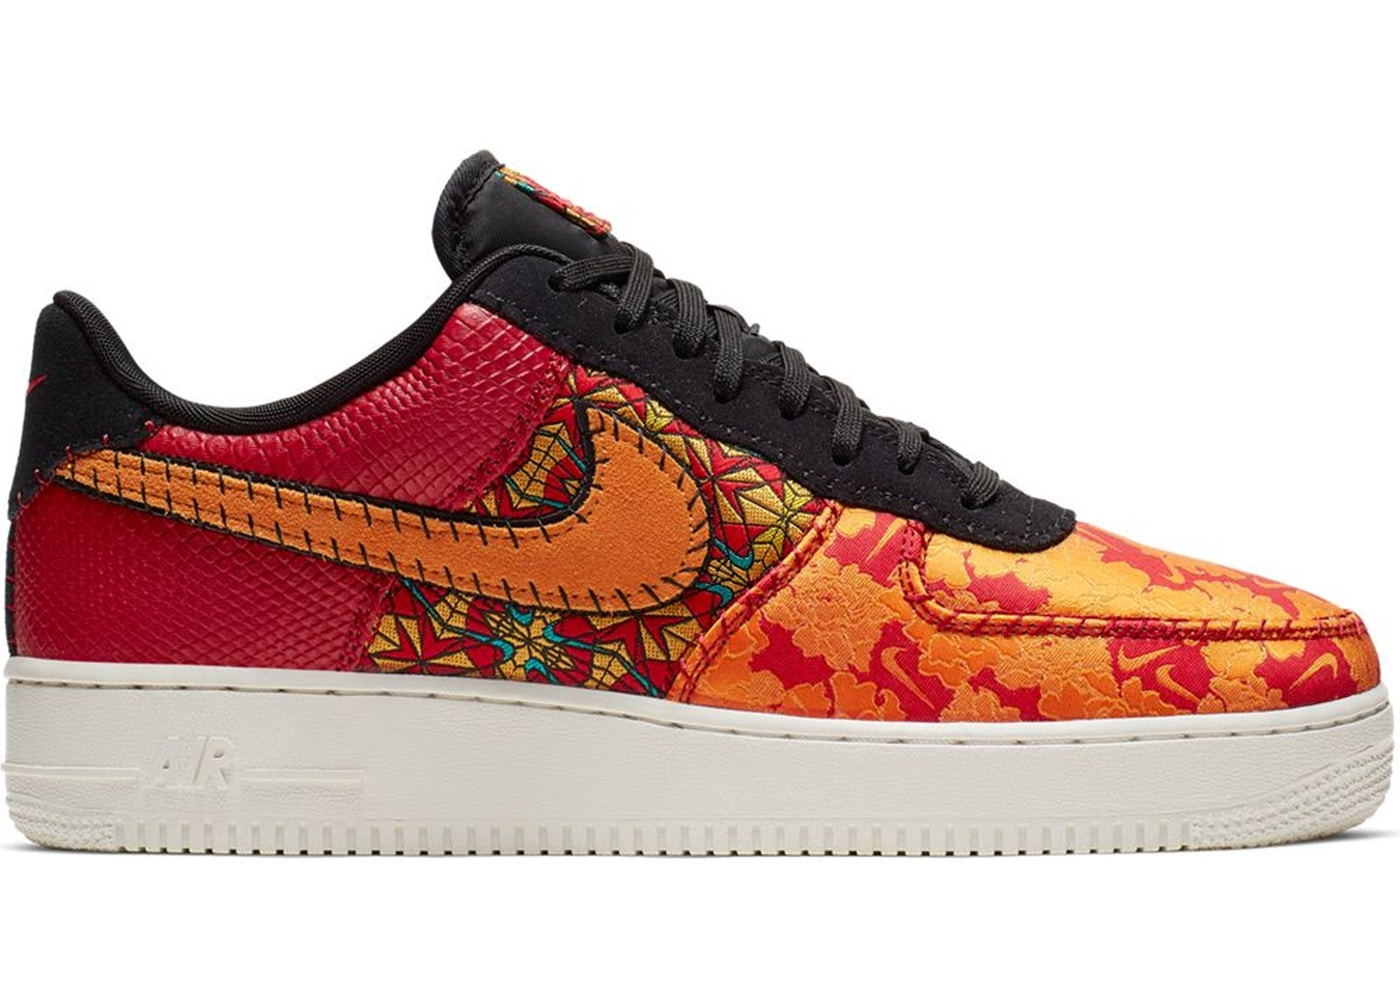 timeless design c9001 41e53 Buy Nike Air Force 1 Shoes   Deadstock Sneakers